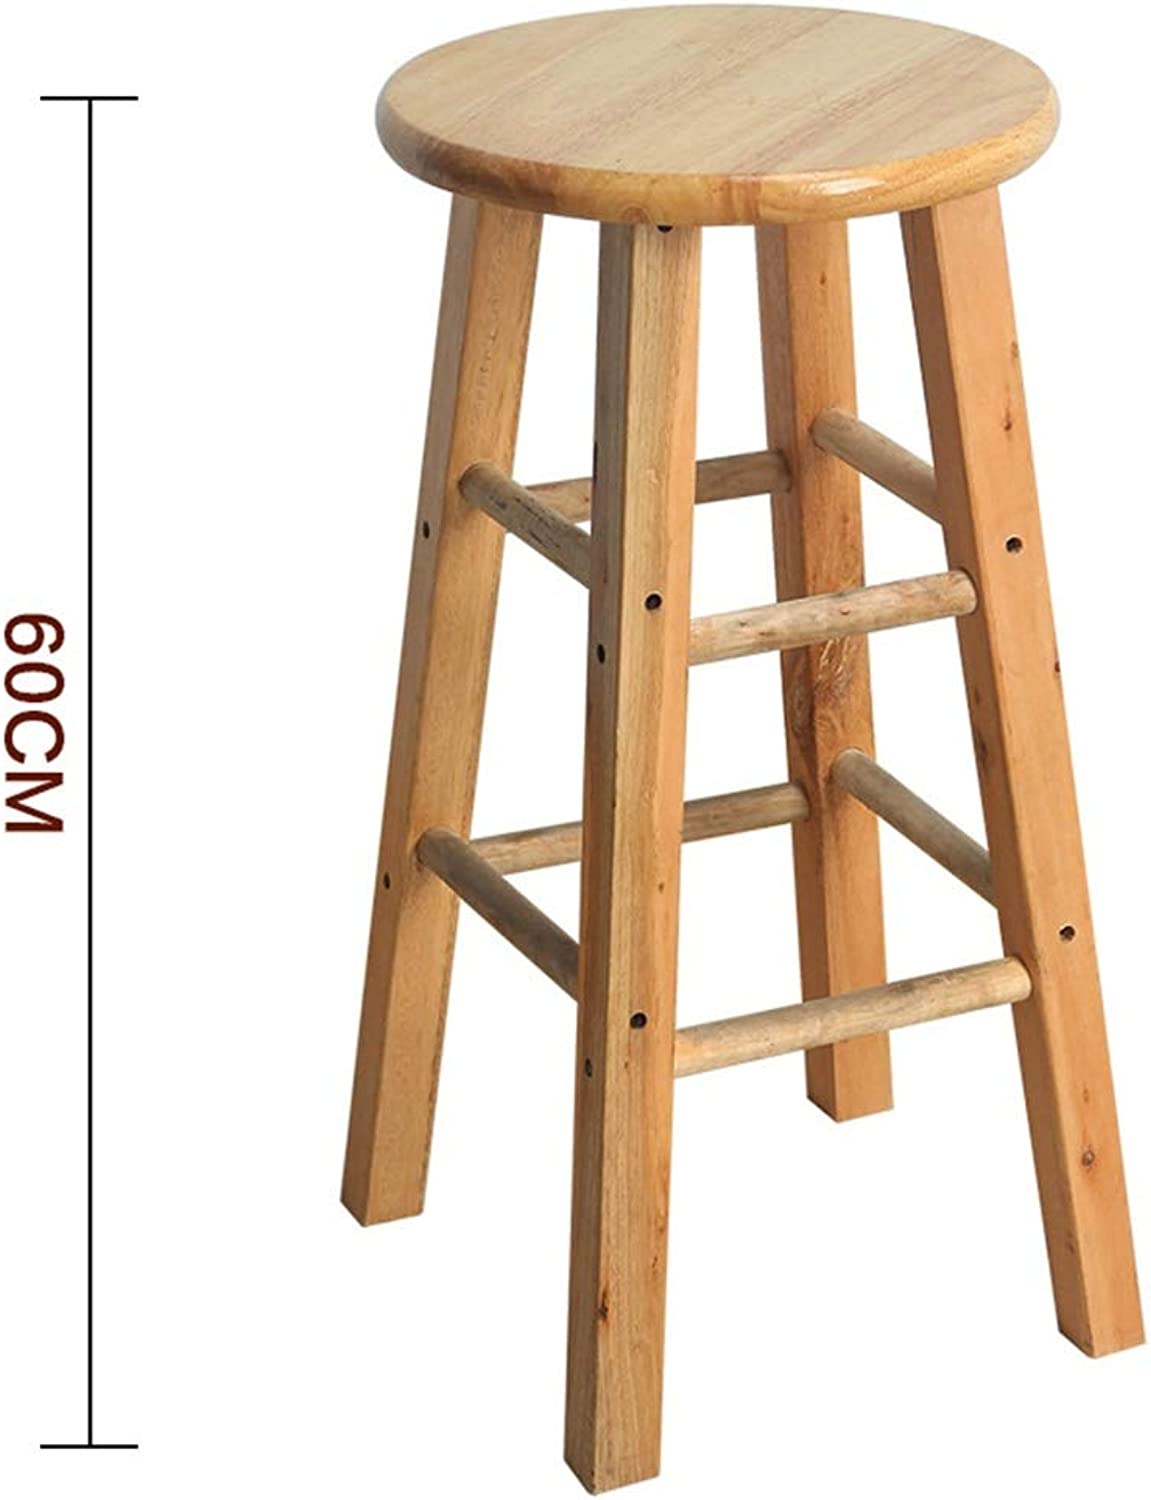 Stool Wooden Bar Stools, Round High Stools, for Counter Café Kitchen Breakfast Pub (Size   60cm)